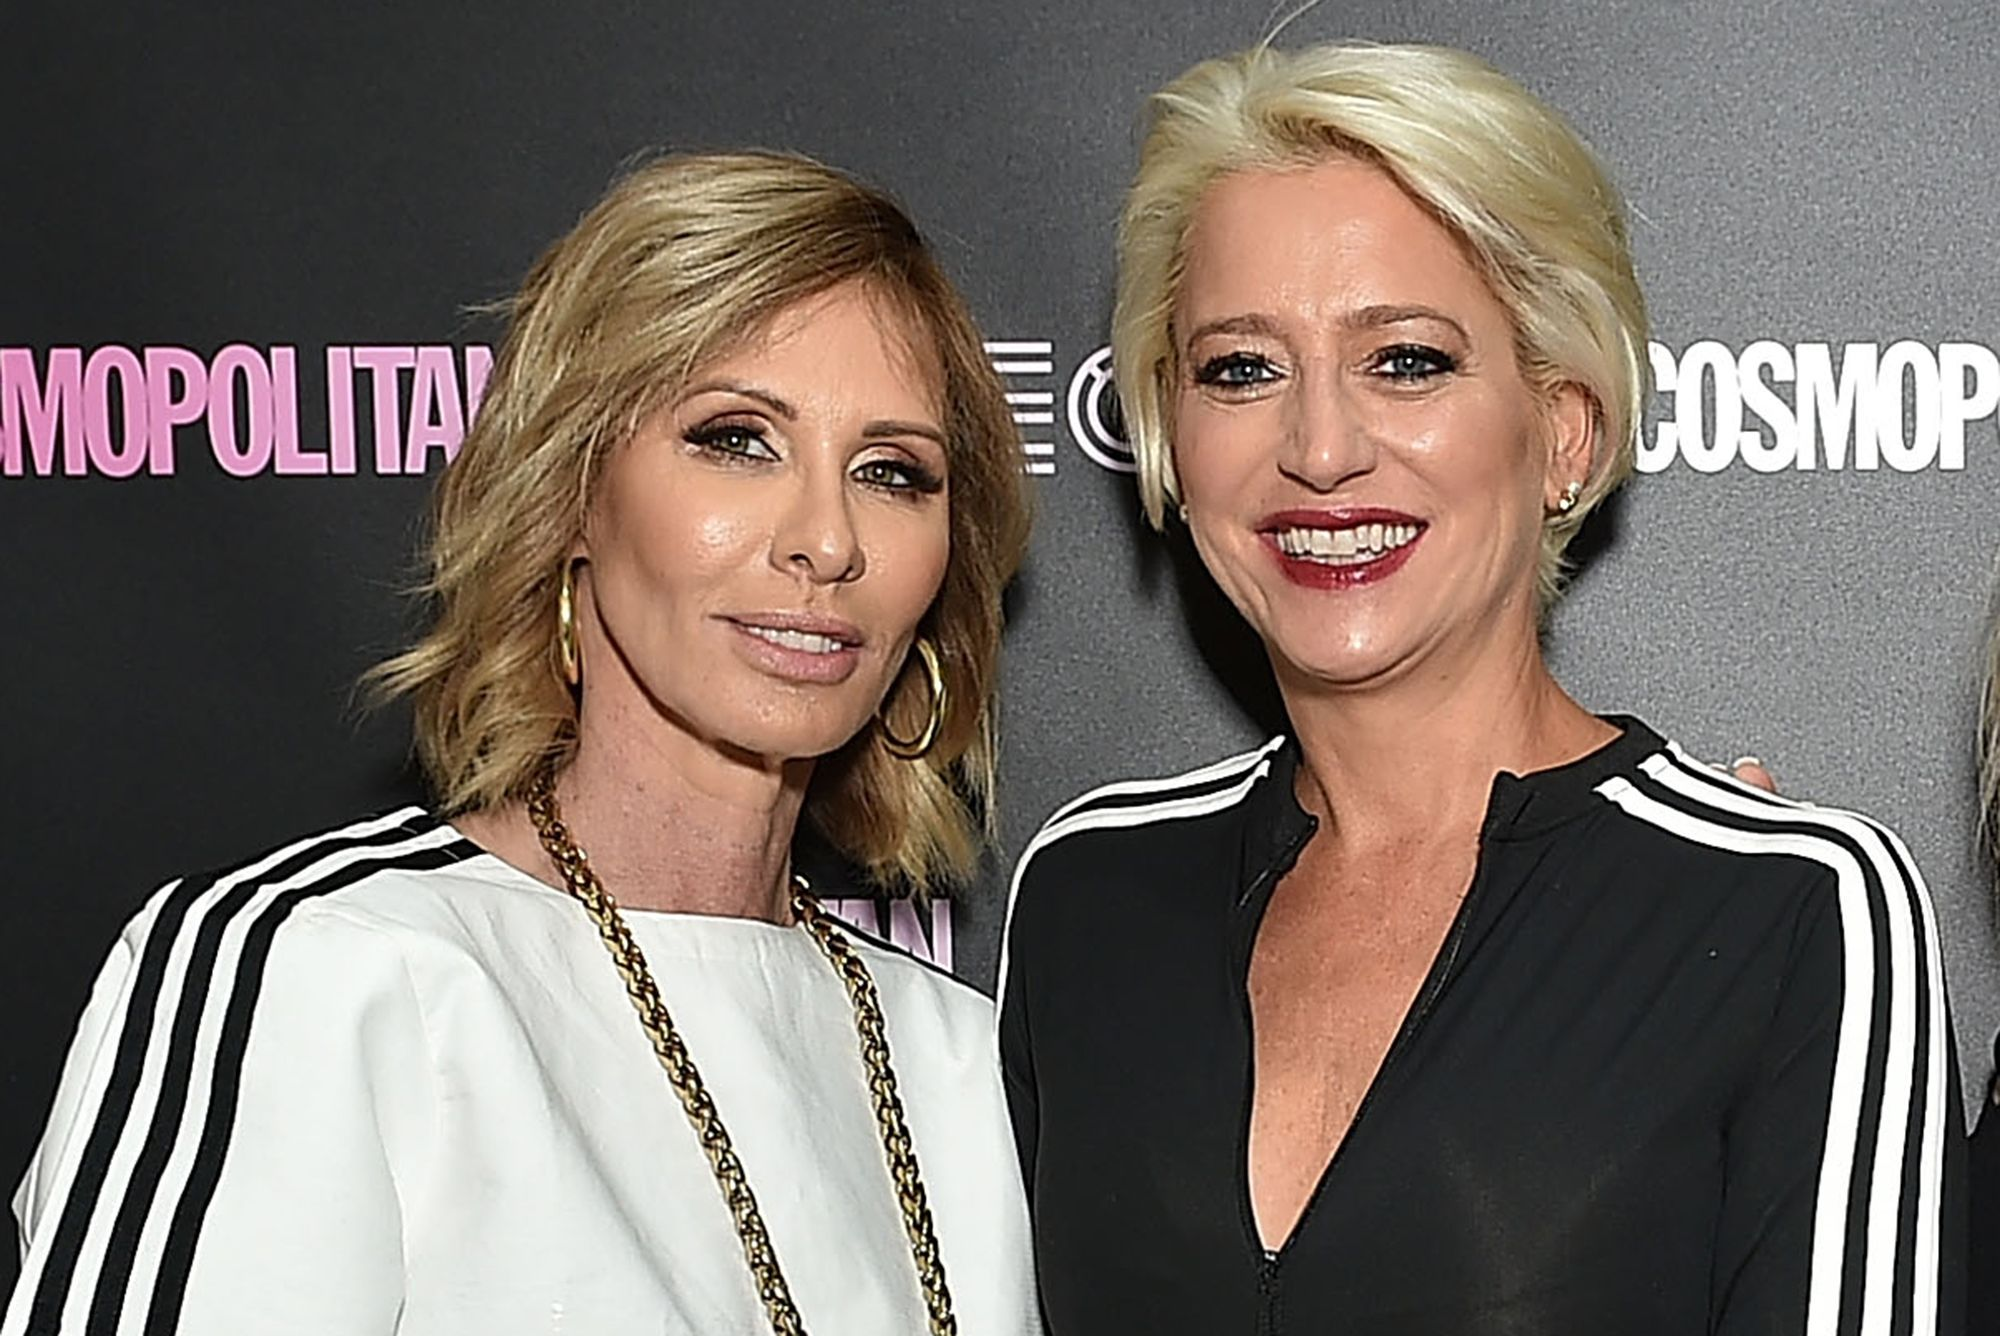 carole-radziwill-drags-all-rhony-cast-members-and-only-praises-dorinda-medley-after-she-leaves-the-show